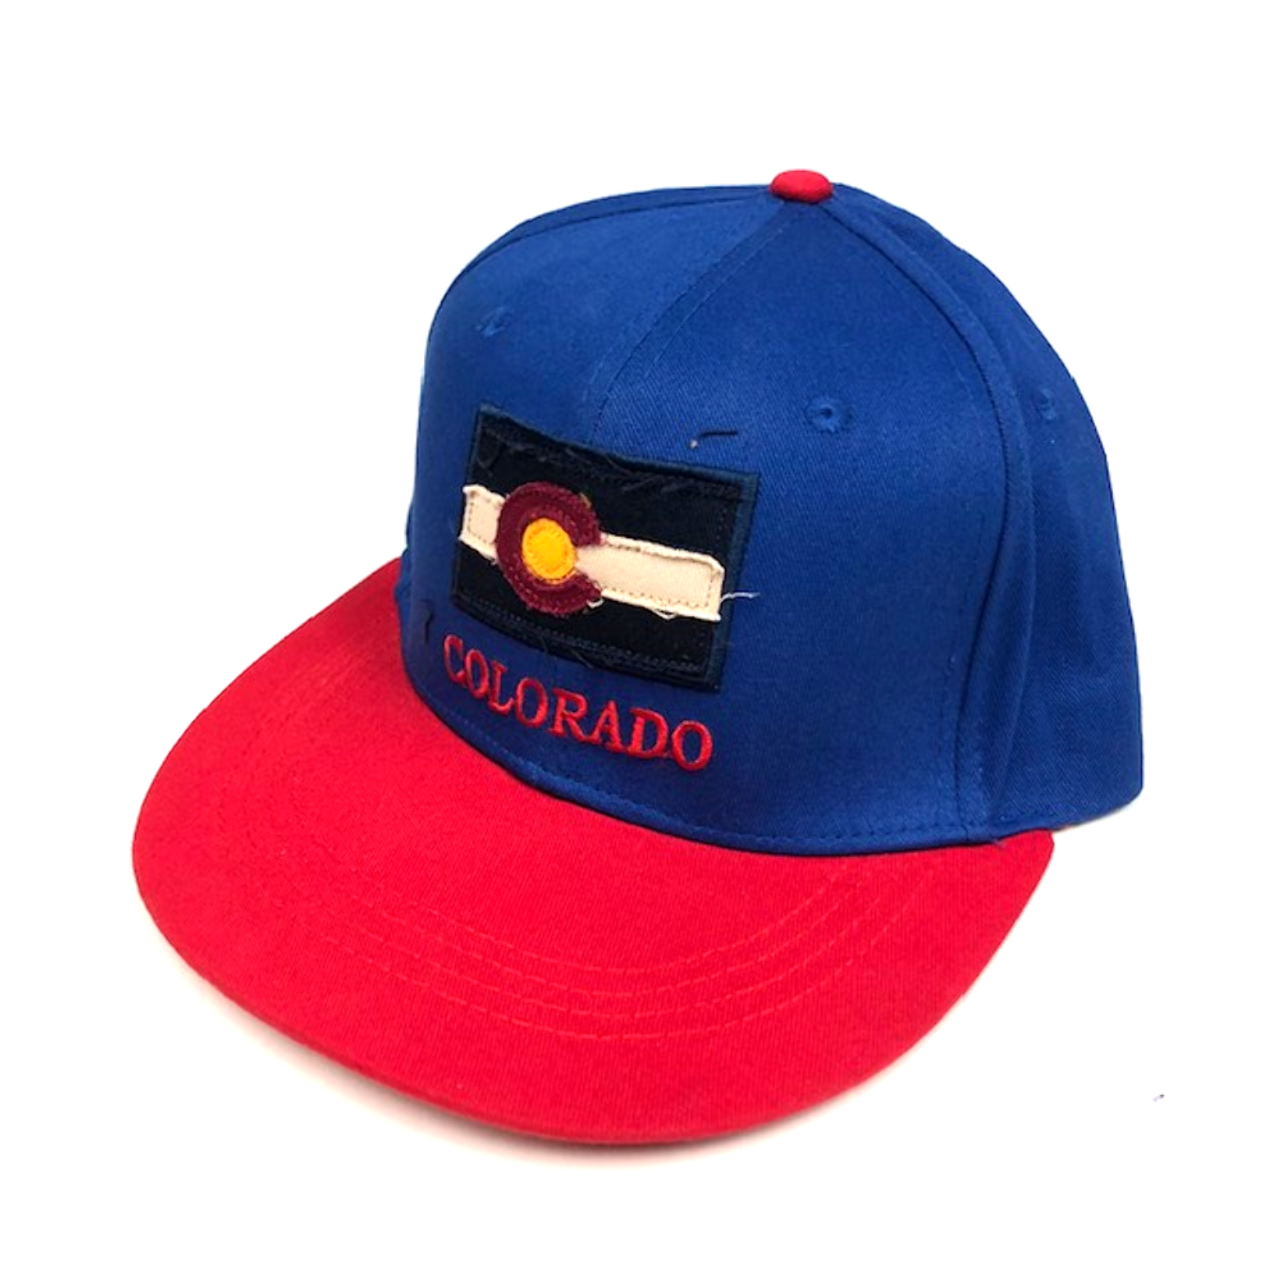 5889717ec Colorado Flag Adjustable Flat Brim Baseball Hat (BLUE & RED)